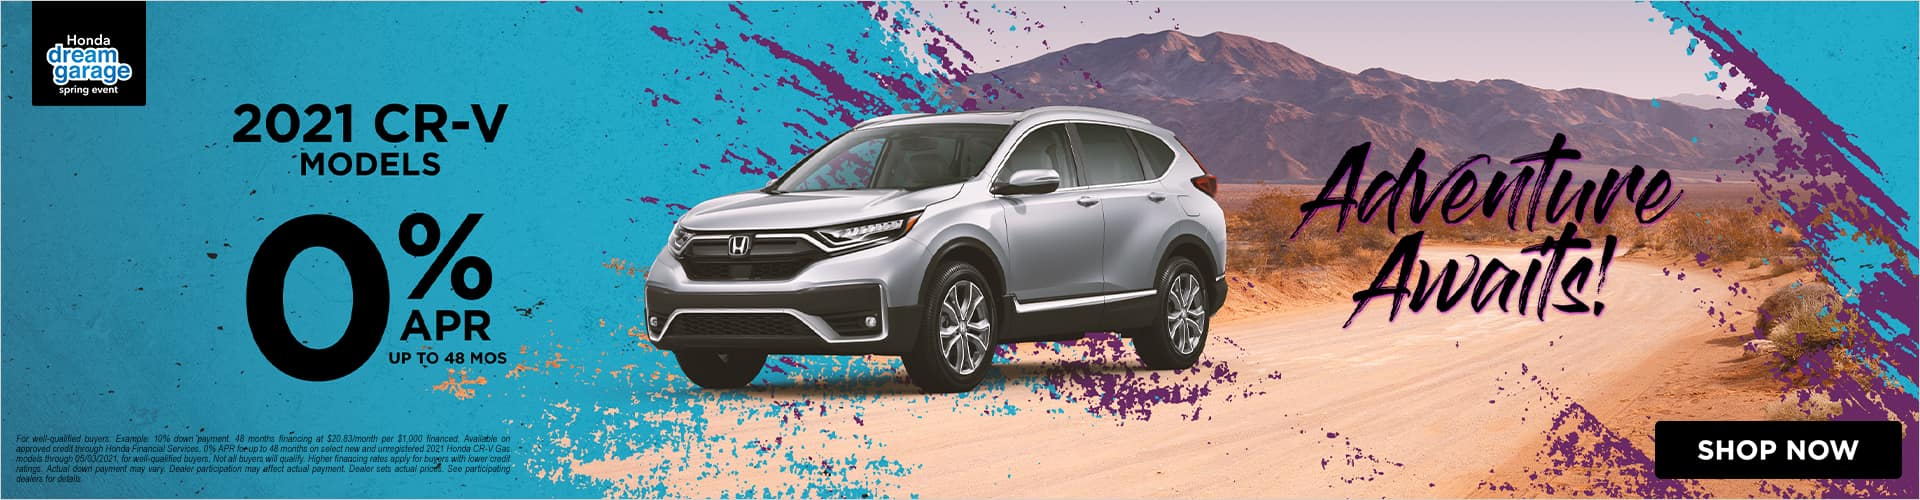 0% APR on the 2021 Honda CR-V